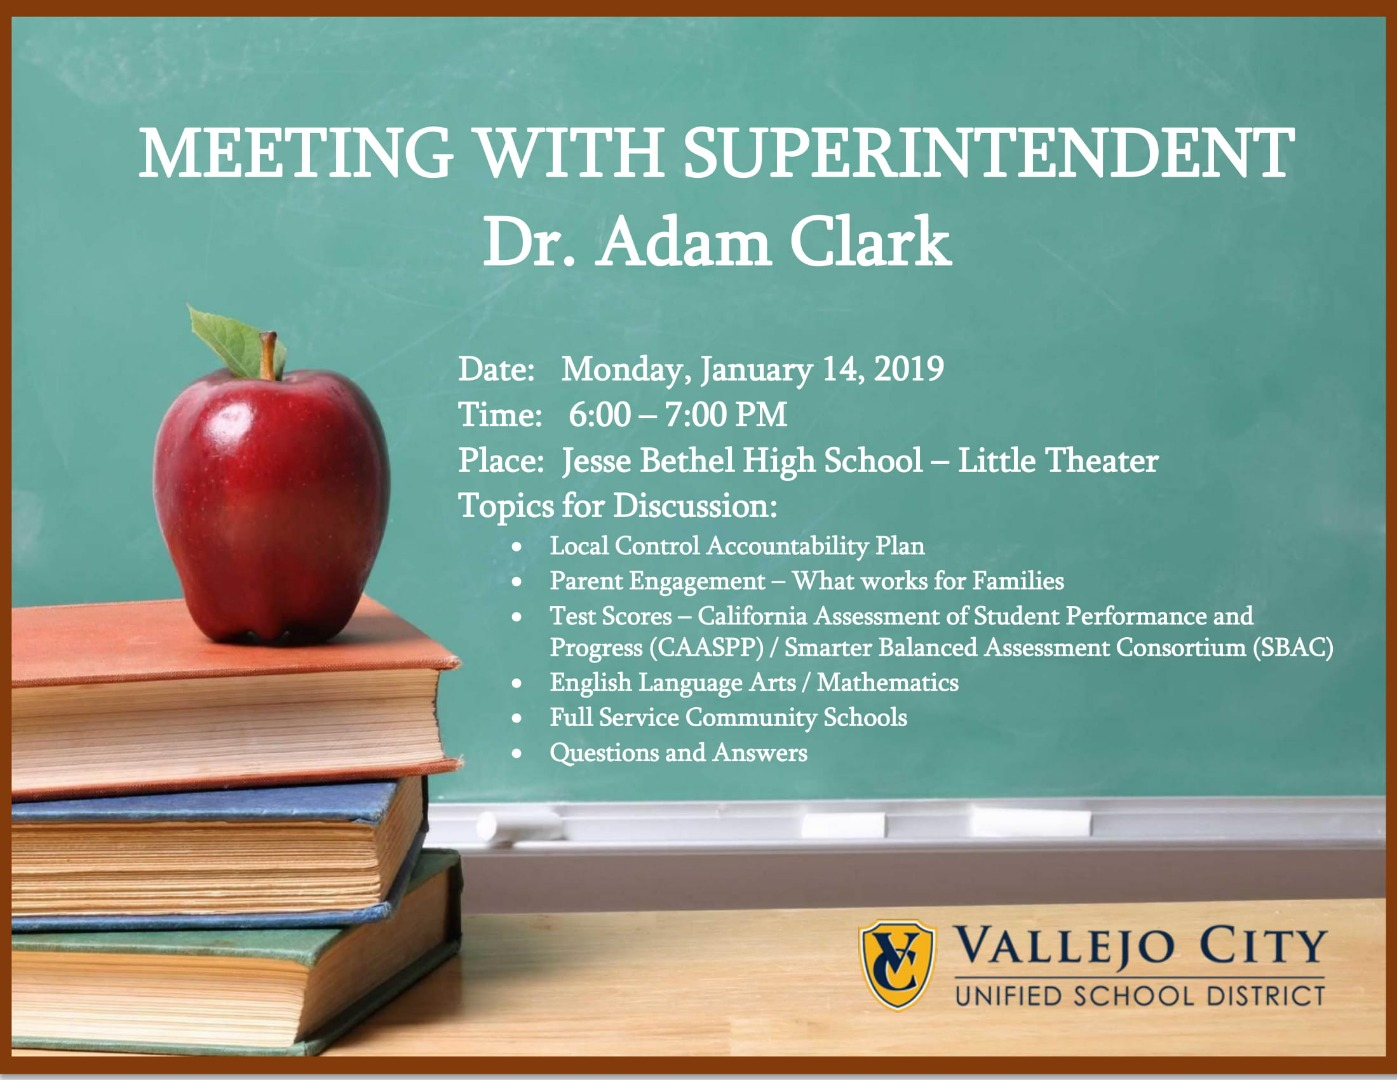 Meeting with Superintendent Info